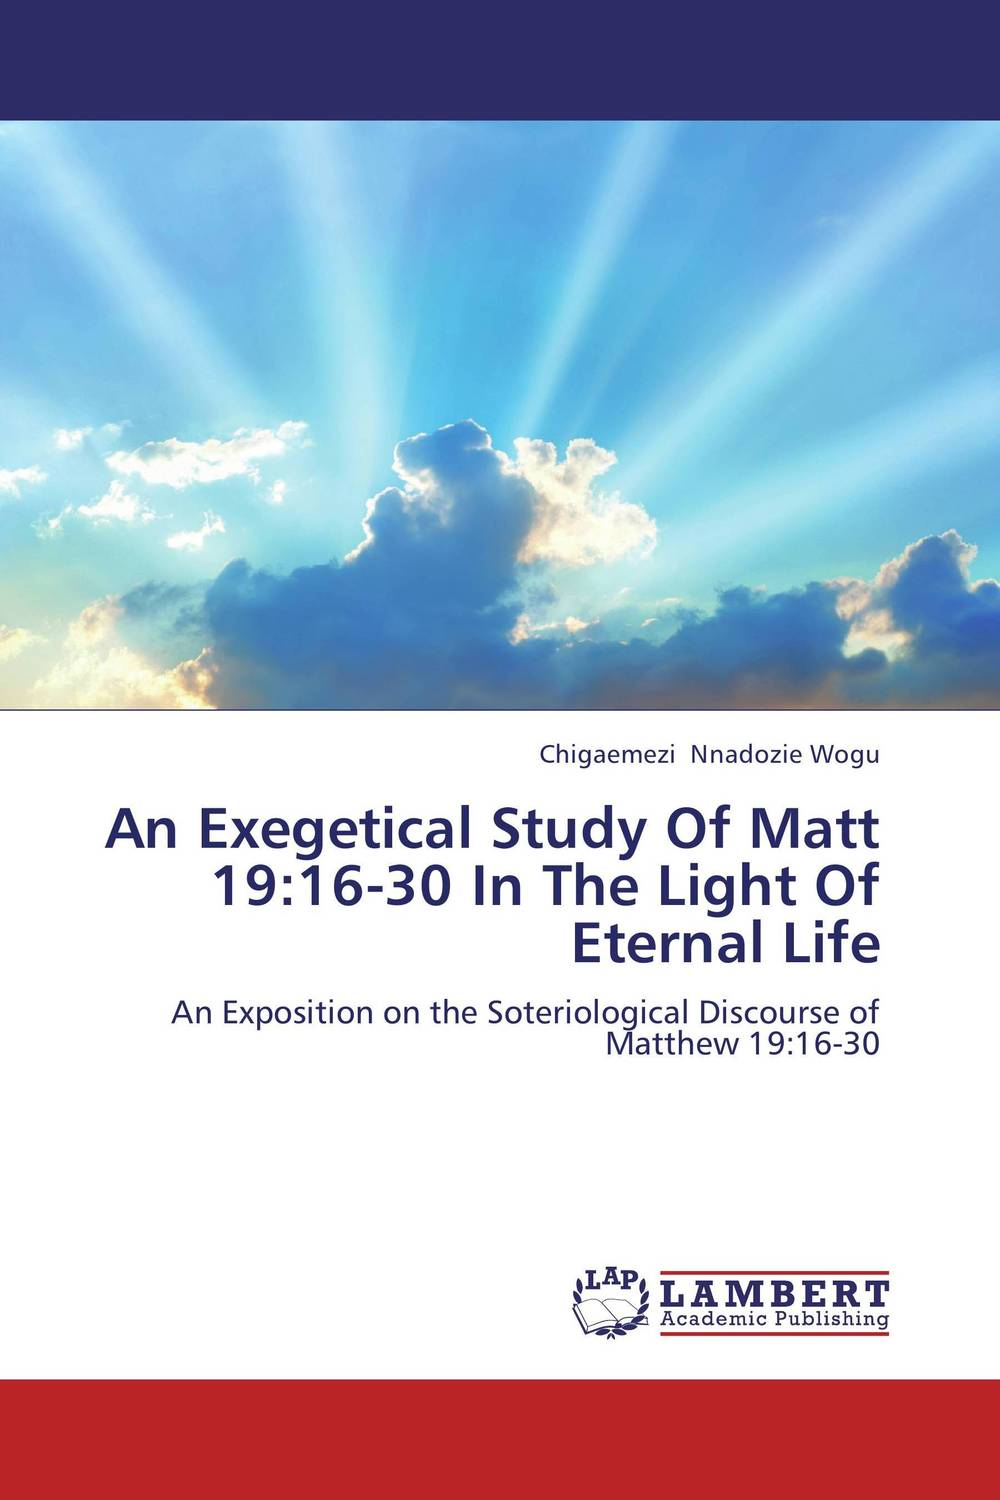 An Exegetical Study Of Matt 19:16-30 In The Light Of Eternal Life the quest for meaning